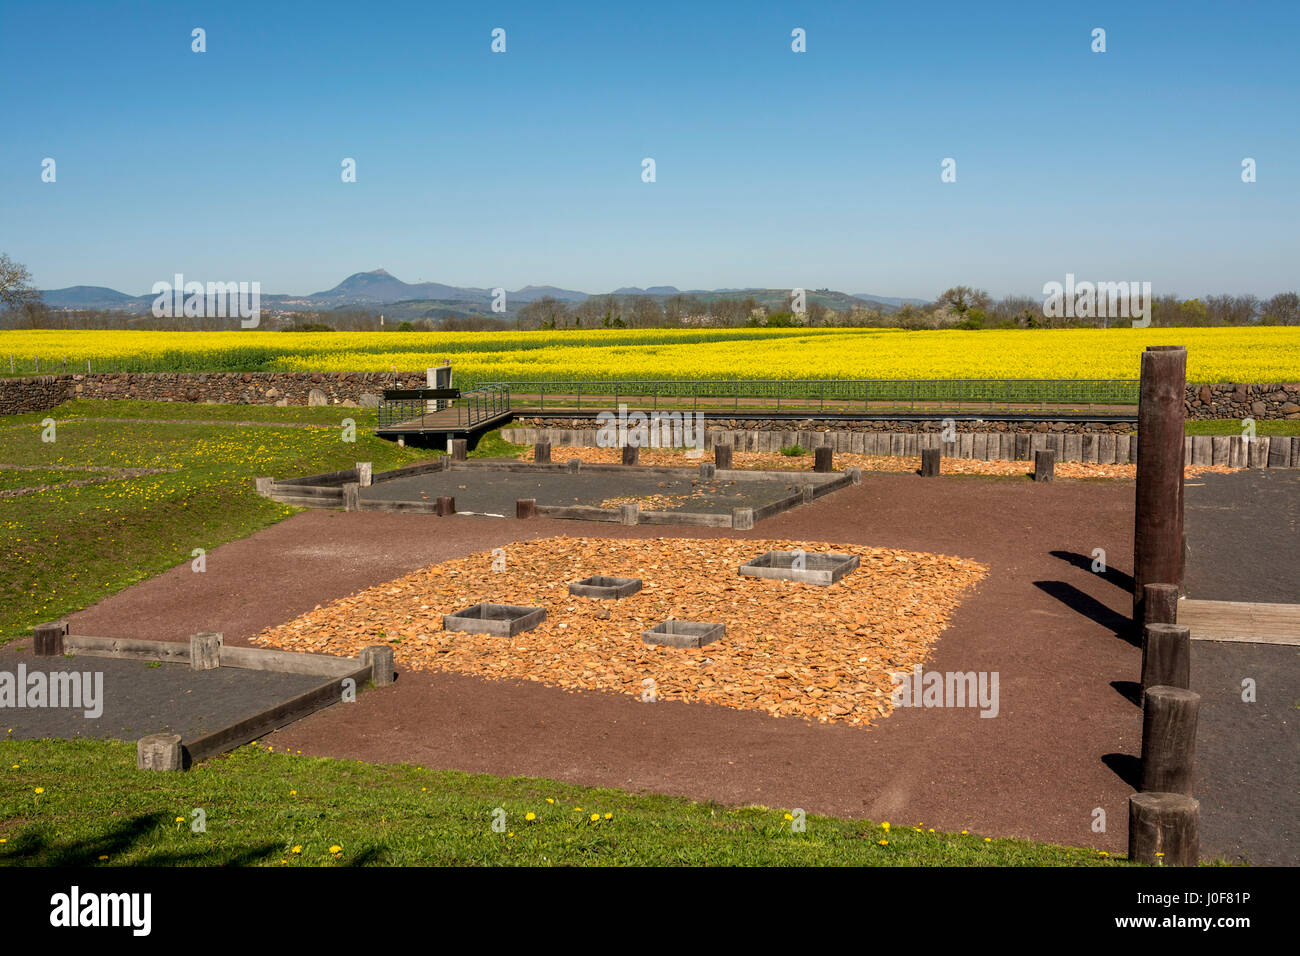 Gaul oppidum of Corent, archeological site, Puy de Dome, France, Europe Stock Photo